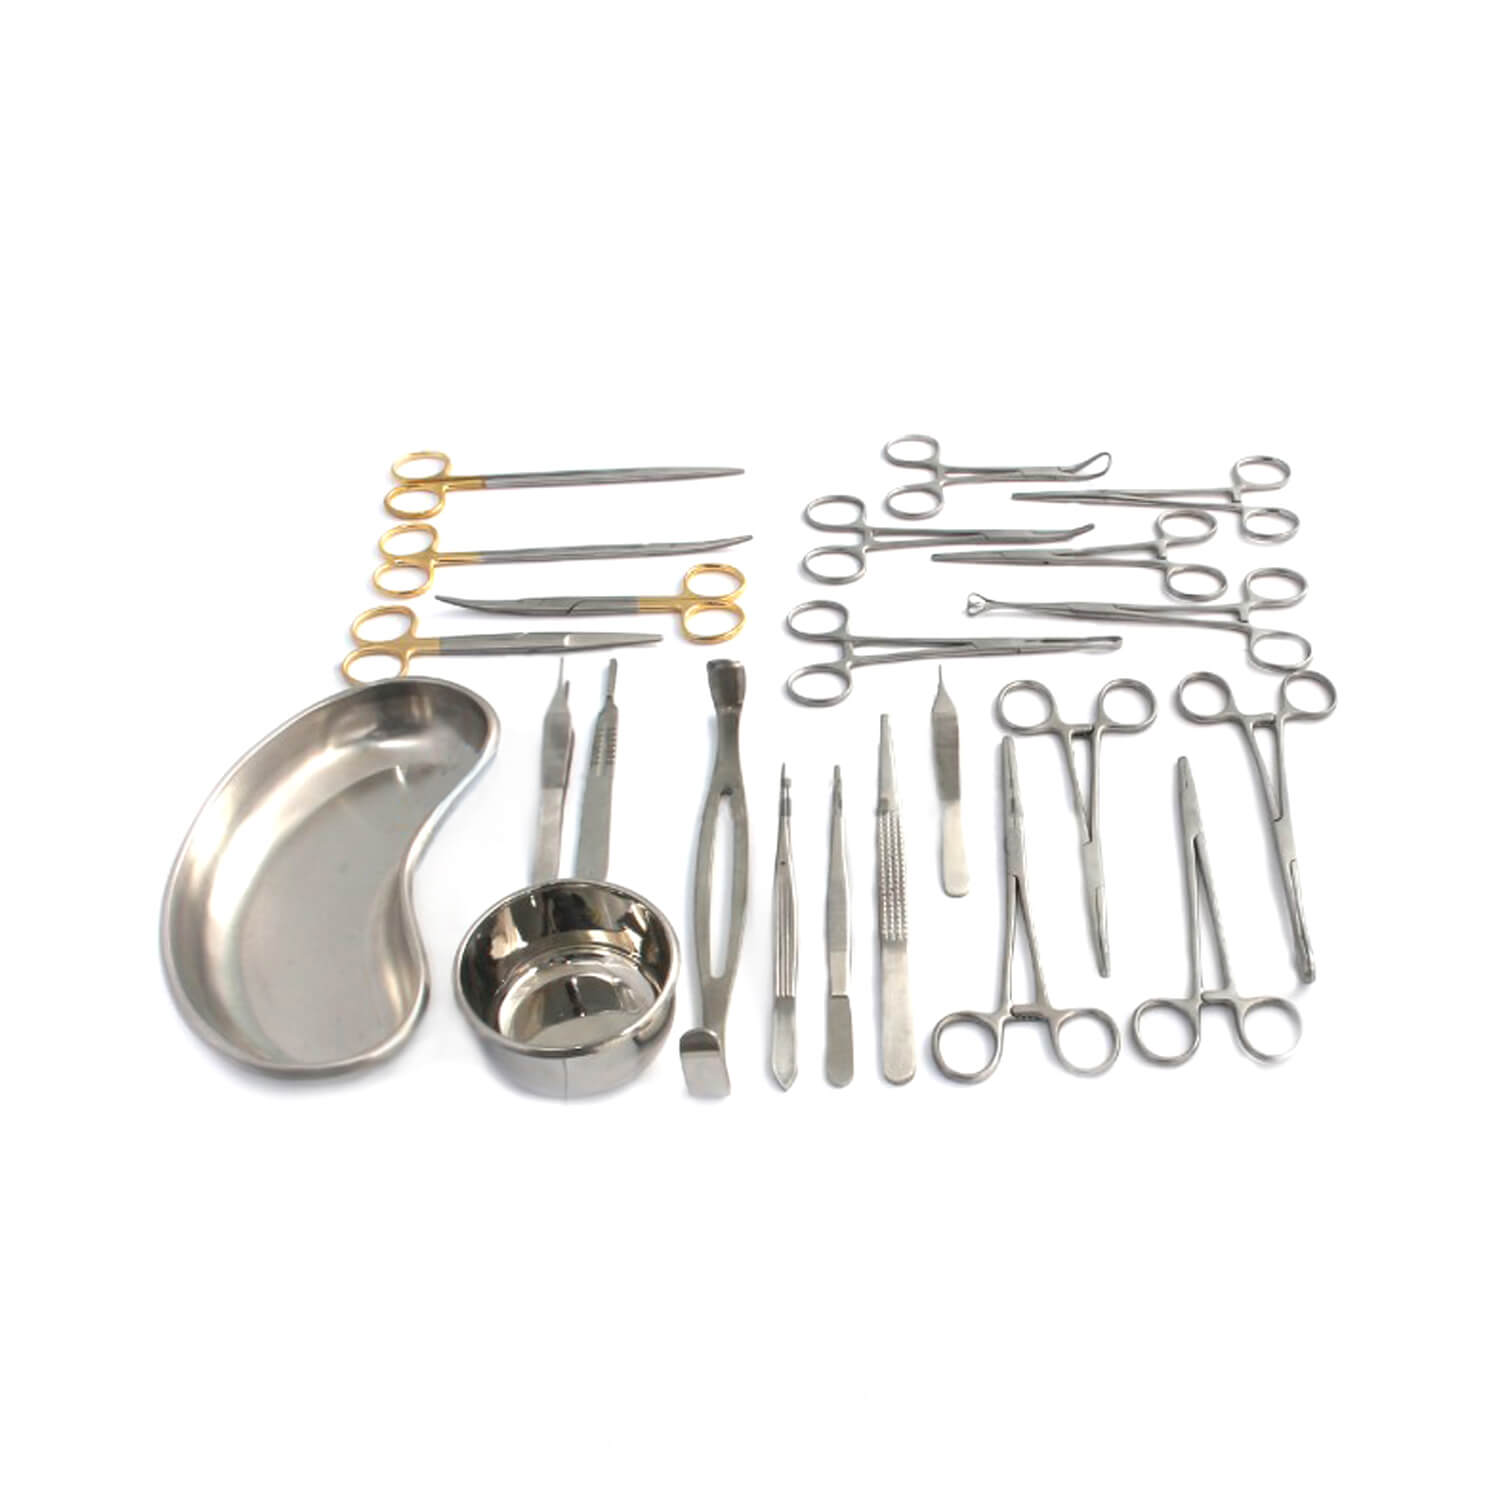 Appendectomy Set